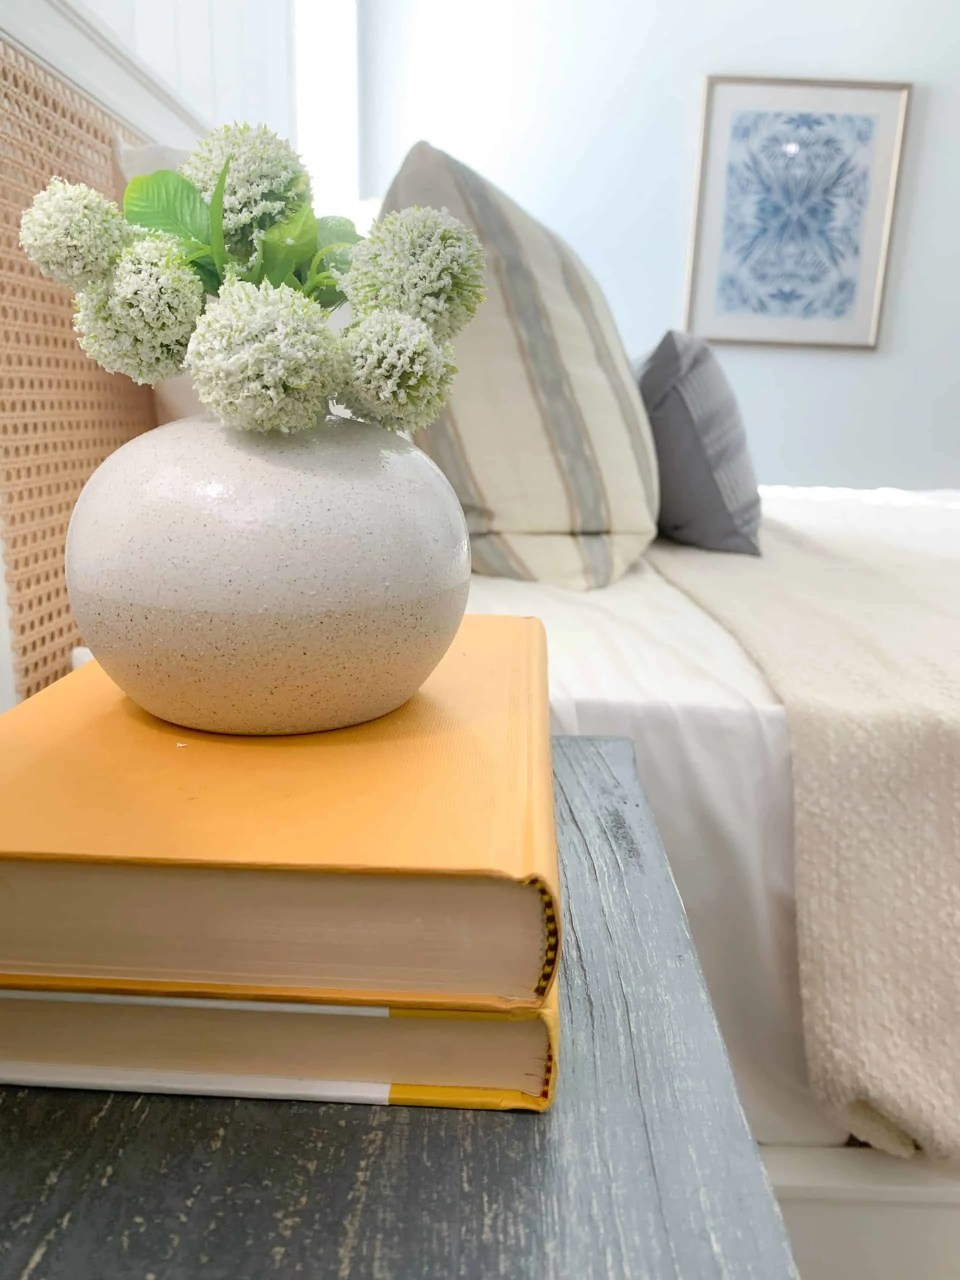 Bedside table styling - books and lamp